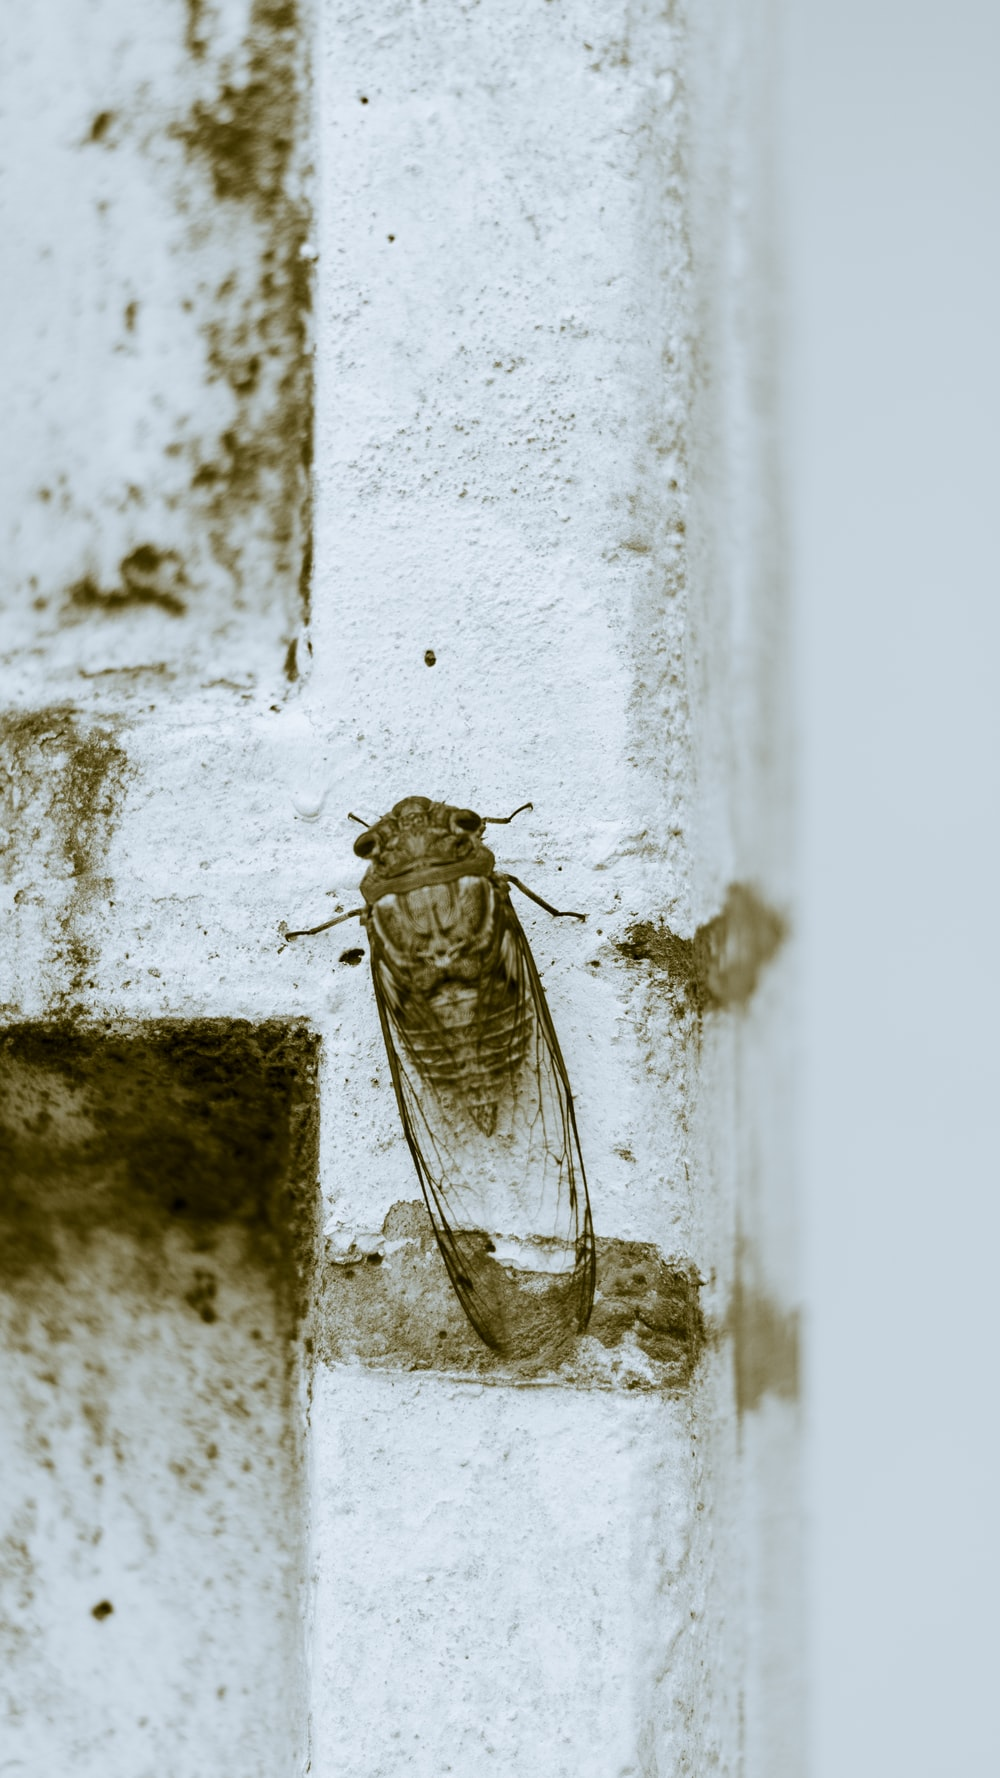 brown and black insect on white concrete wall